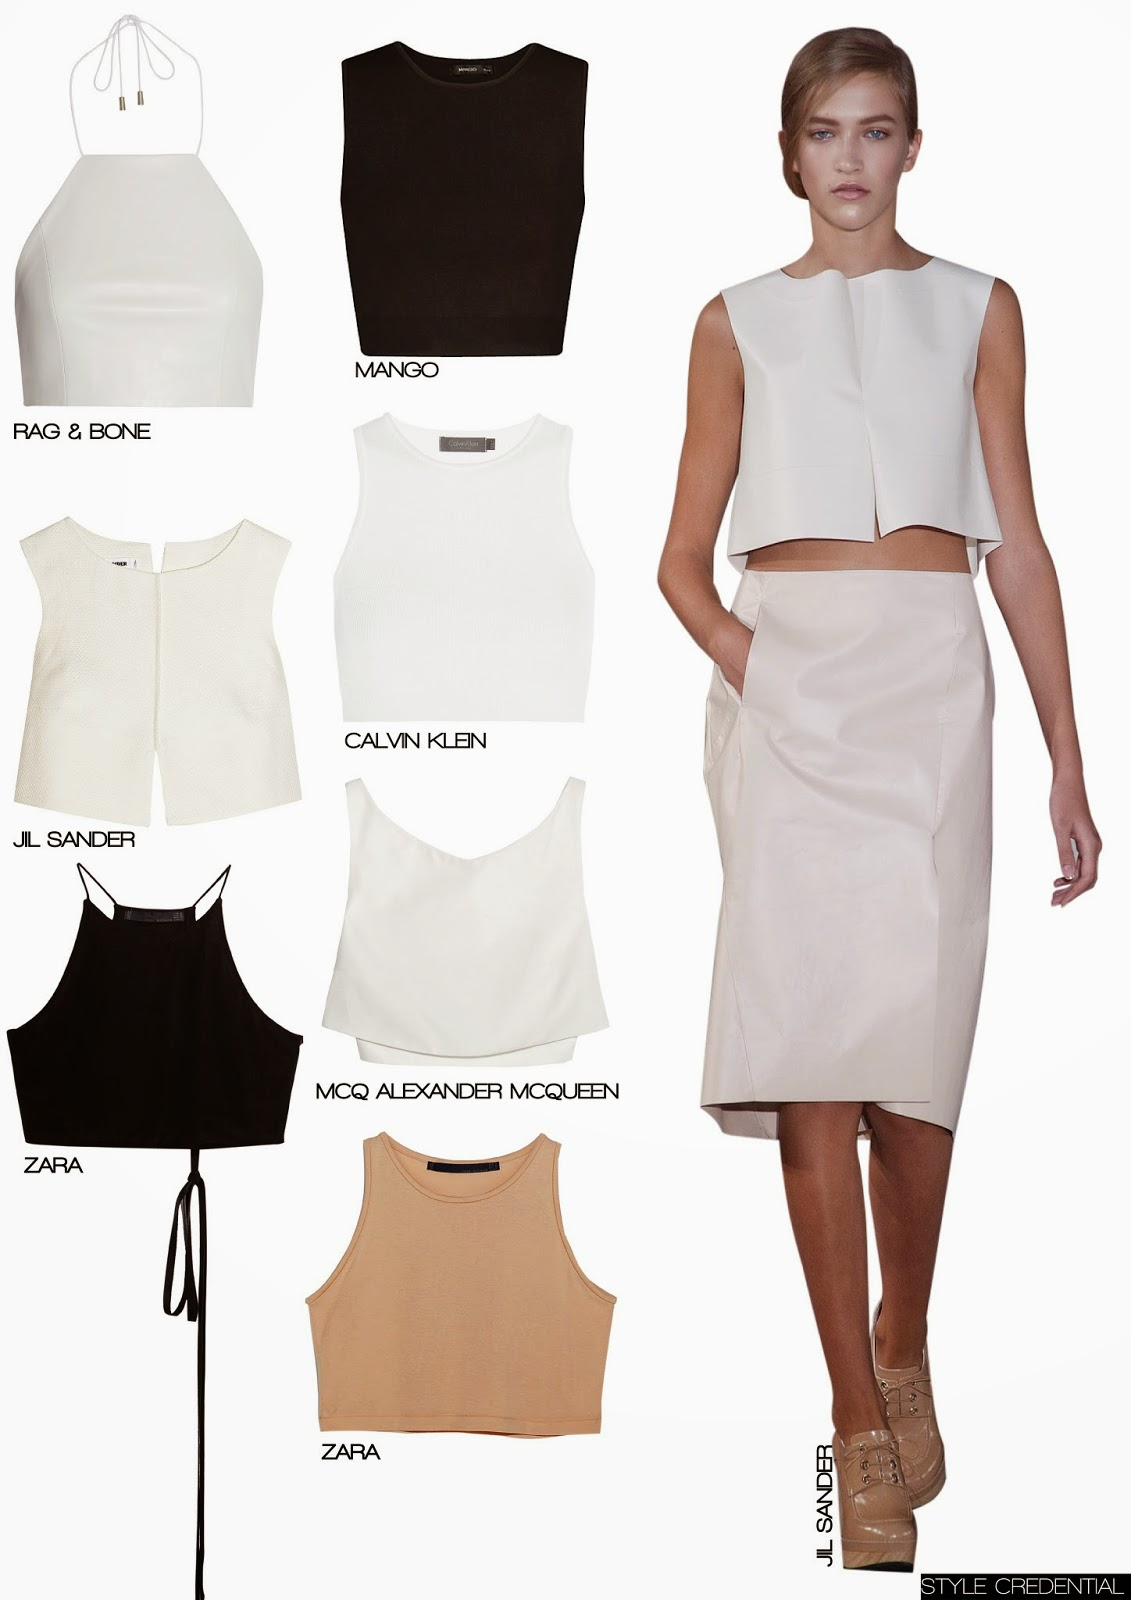 CROPPED TOP TREND